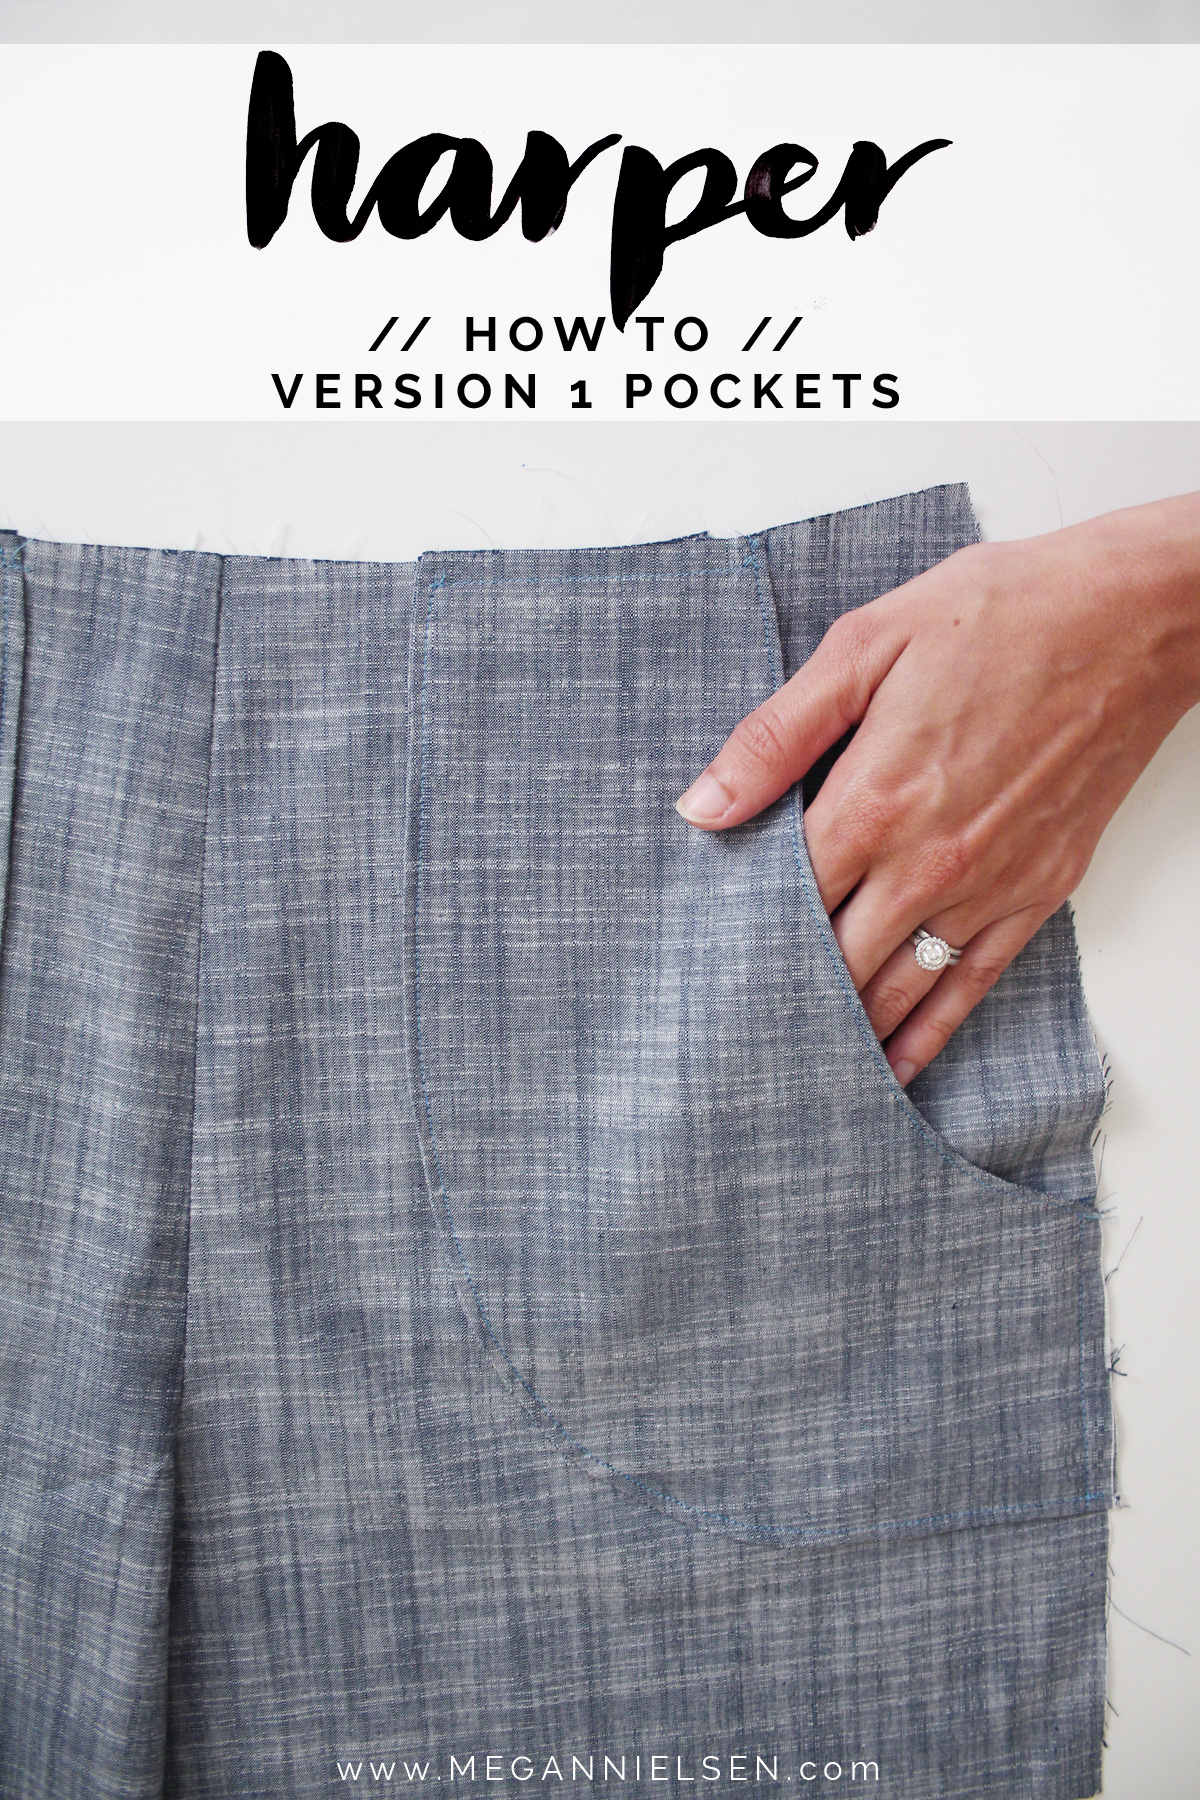 How to sew the version 1 pockets of the Harper shorts by Megan Nielsen Patterns